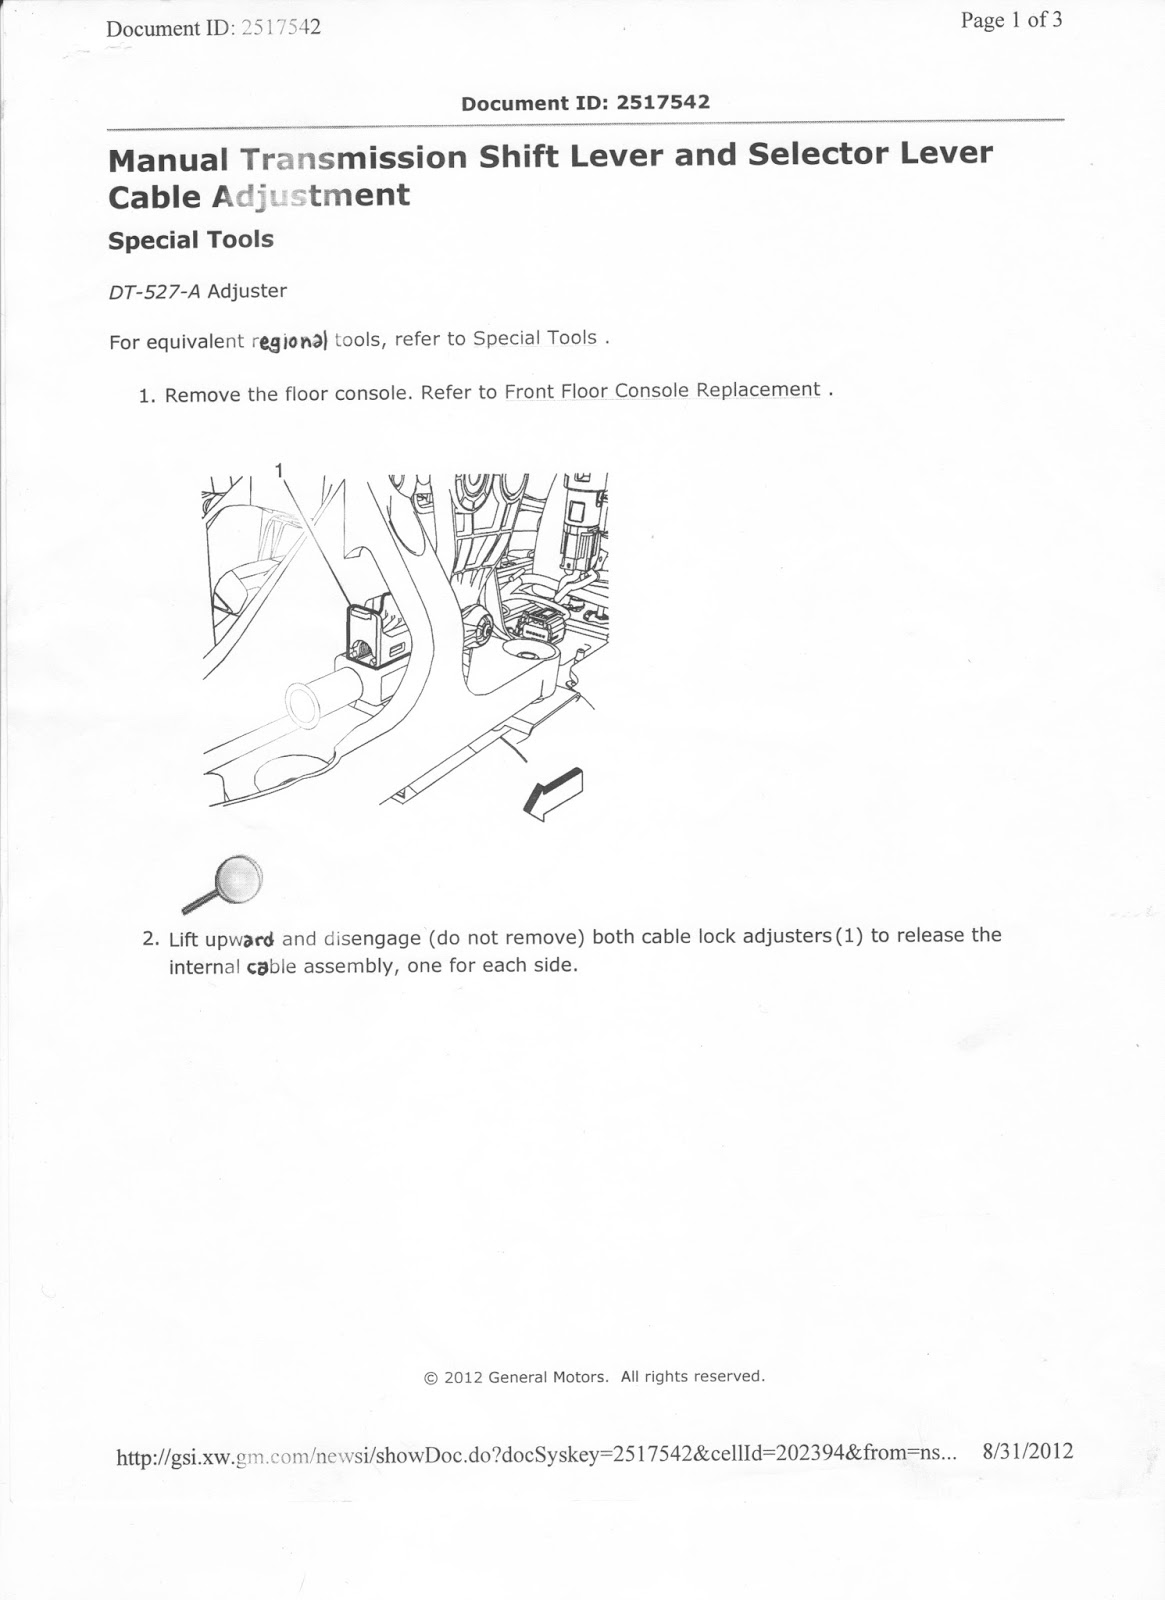 Chevrolet Sonic Repair Manual: Selector and Shift Lever Cable Bracket Replacement